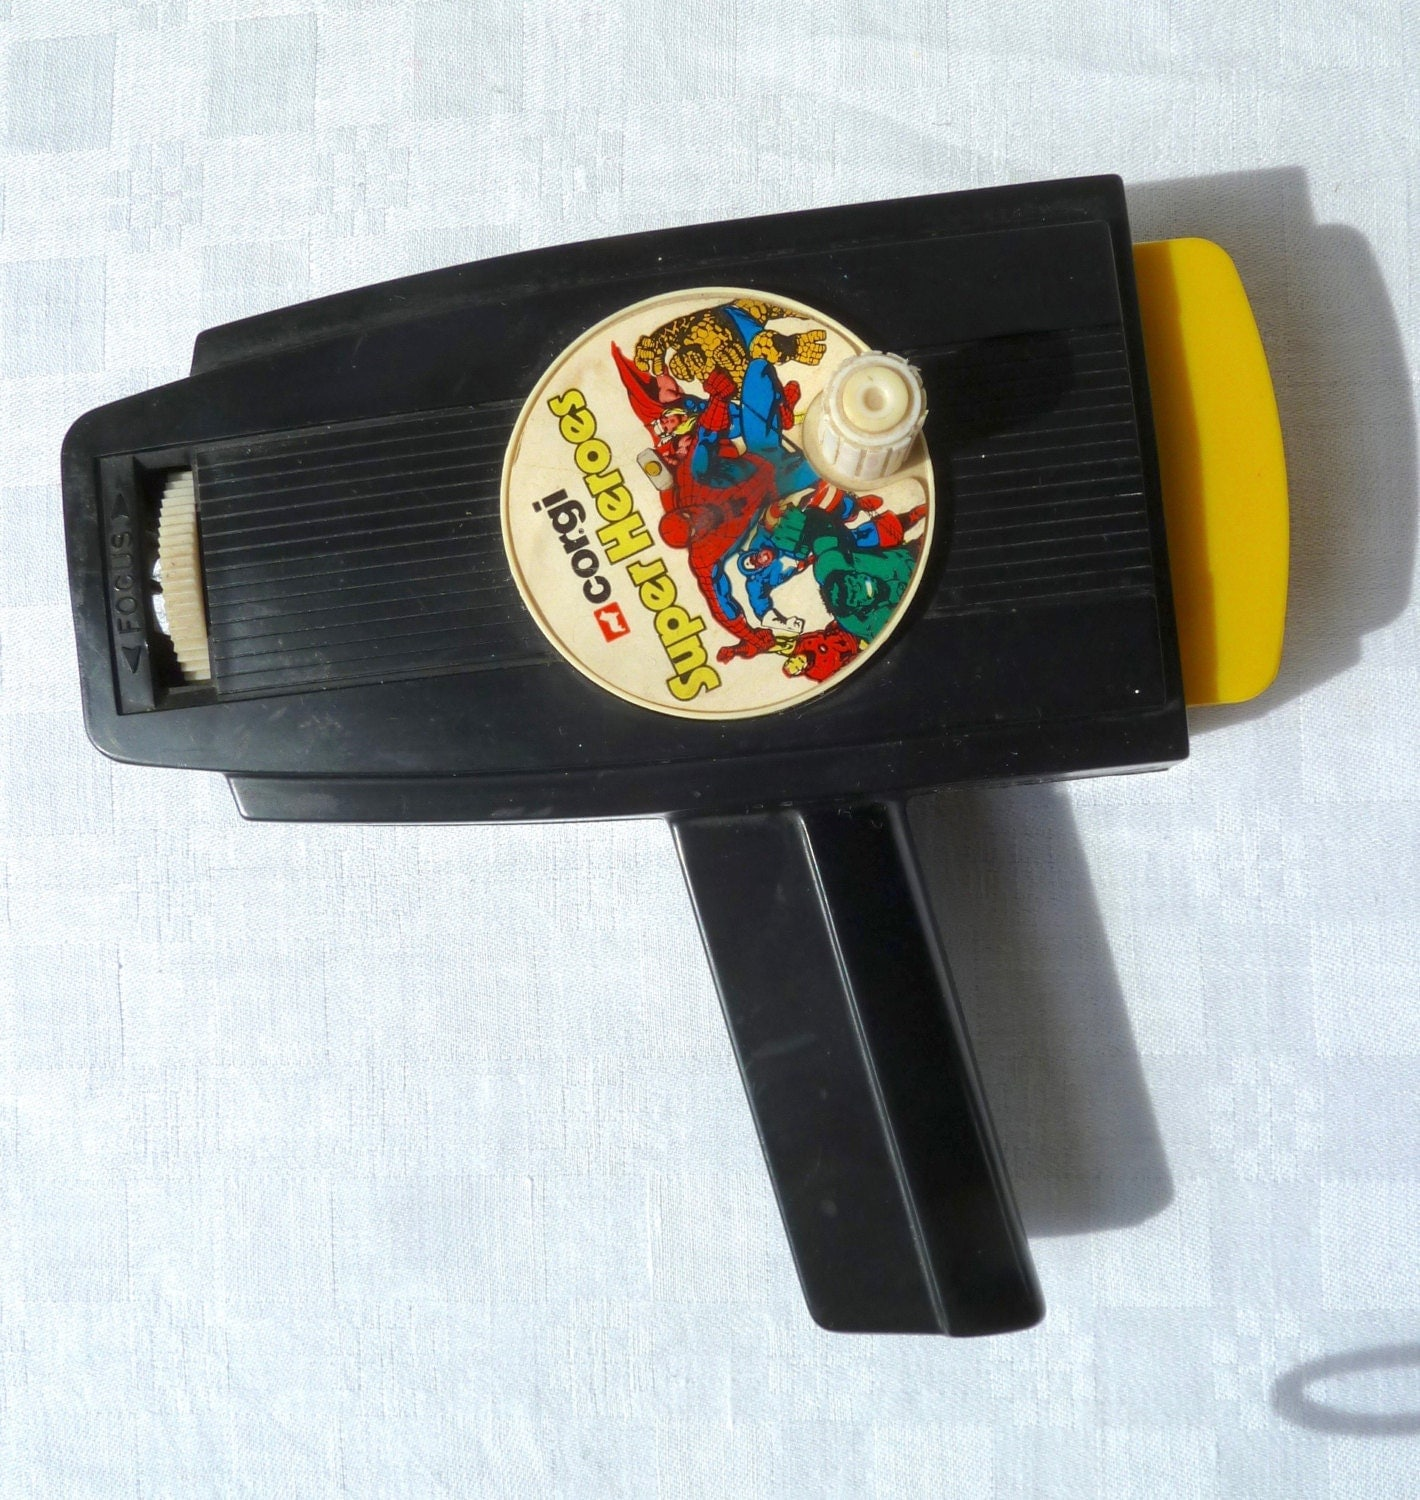 Rare 1970s Corgi Super Heroes Handheld Toy Film Projector With Spiderman Super 8 Film Cassett, Made In Great Britian, Perfect Working Order